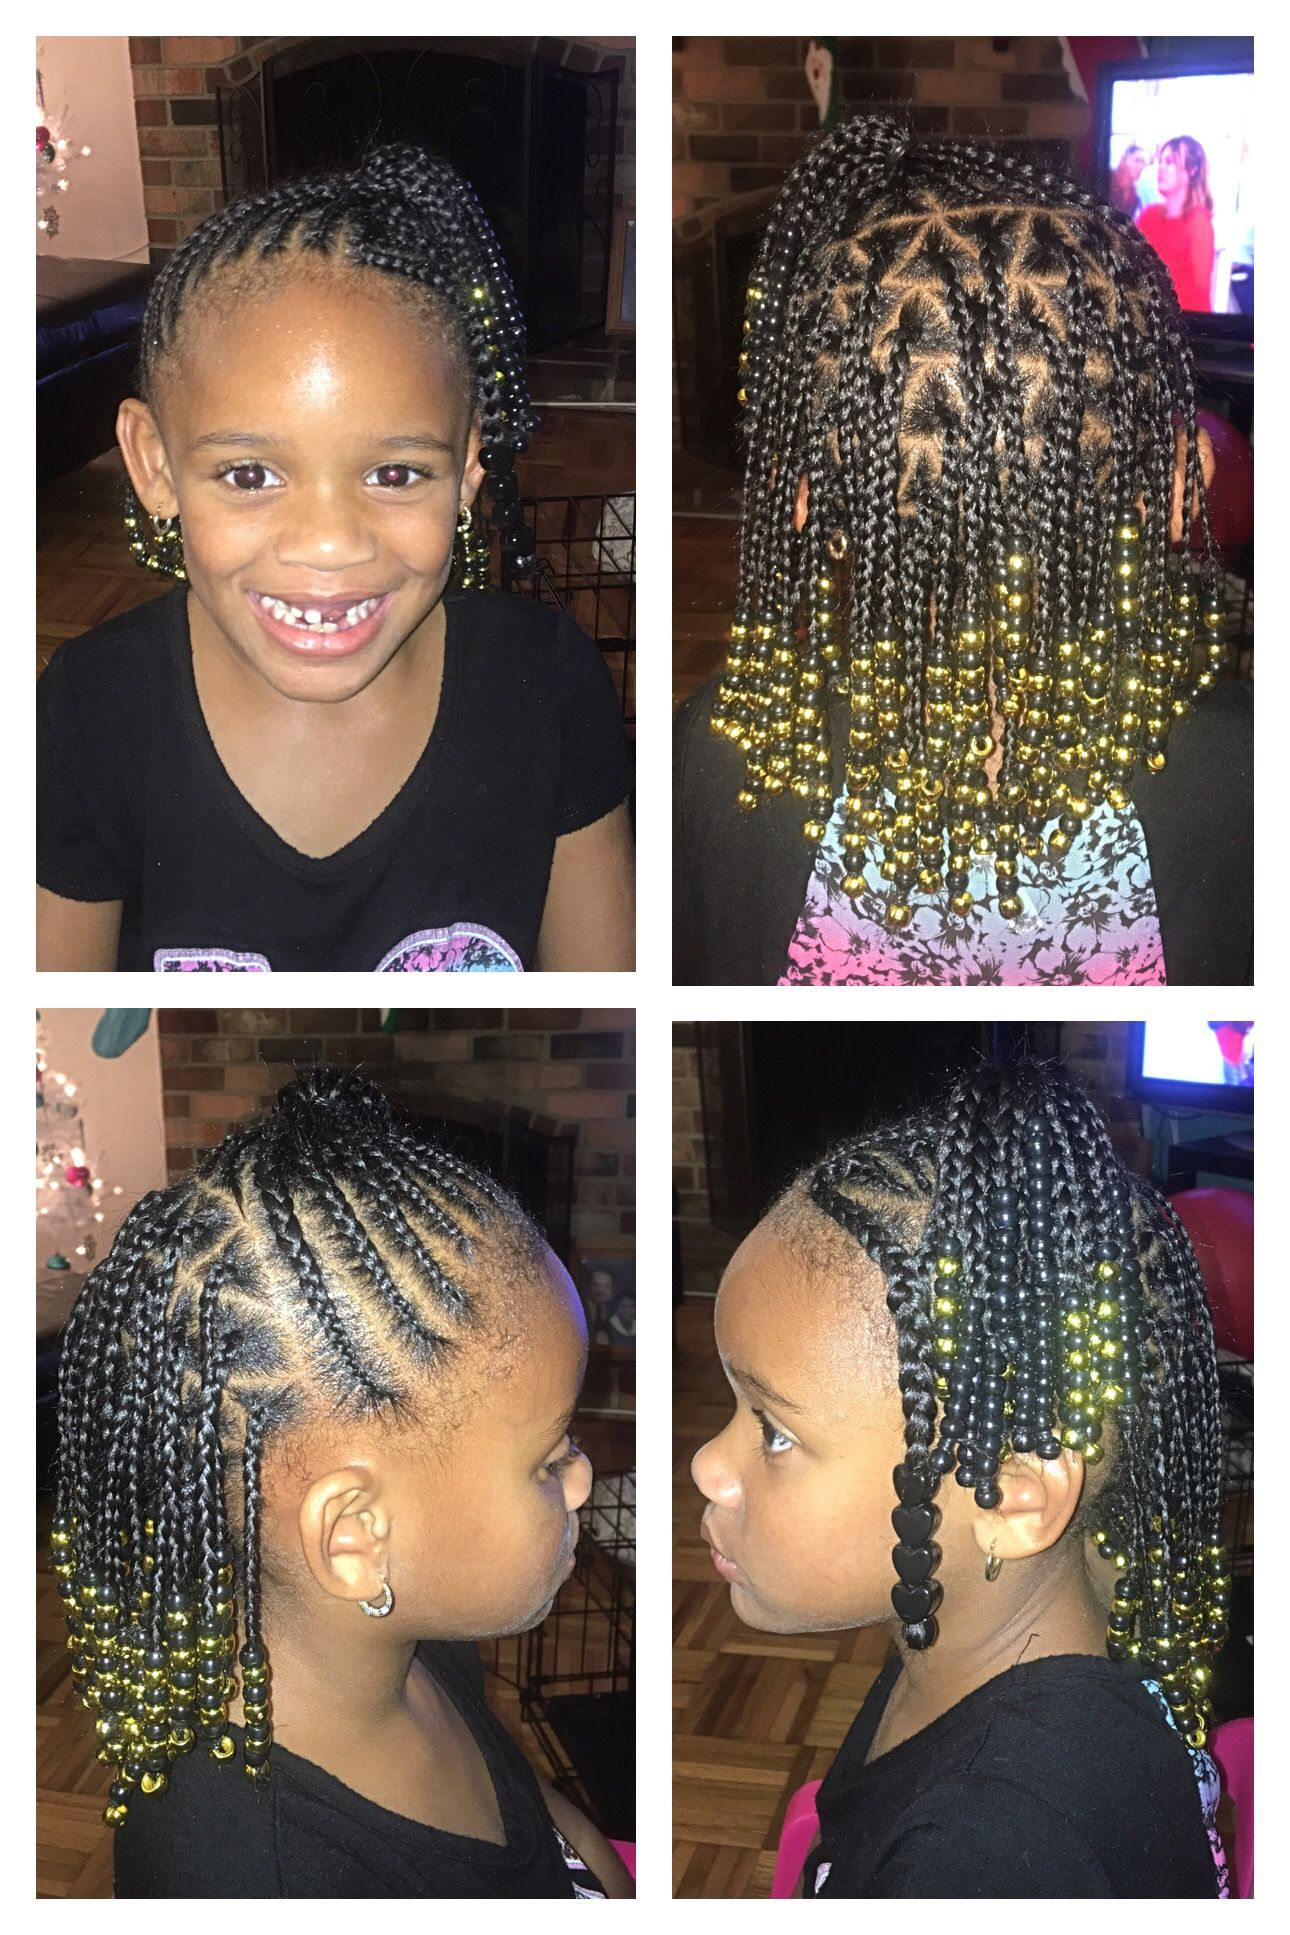 Pin by rebecca rogers on kids hair pinterest girls hair style